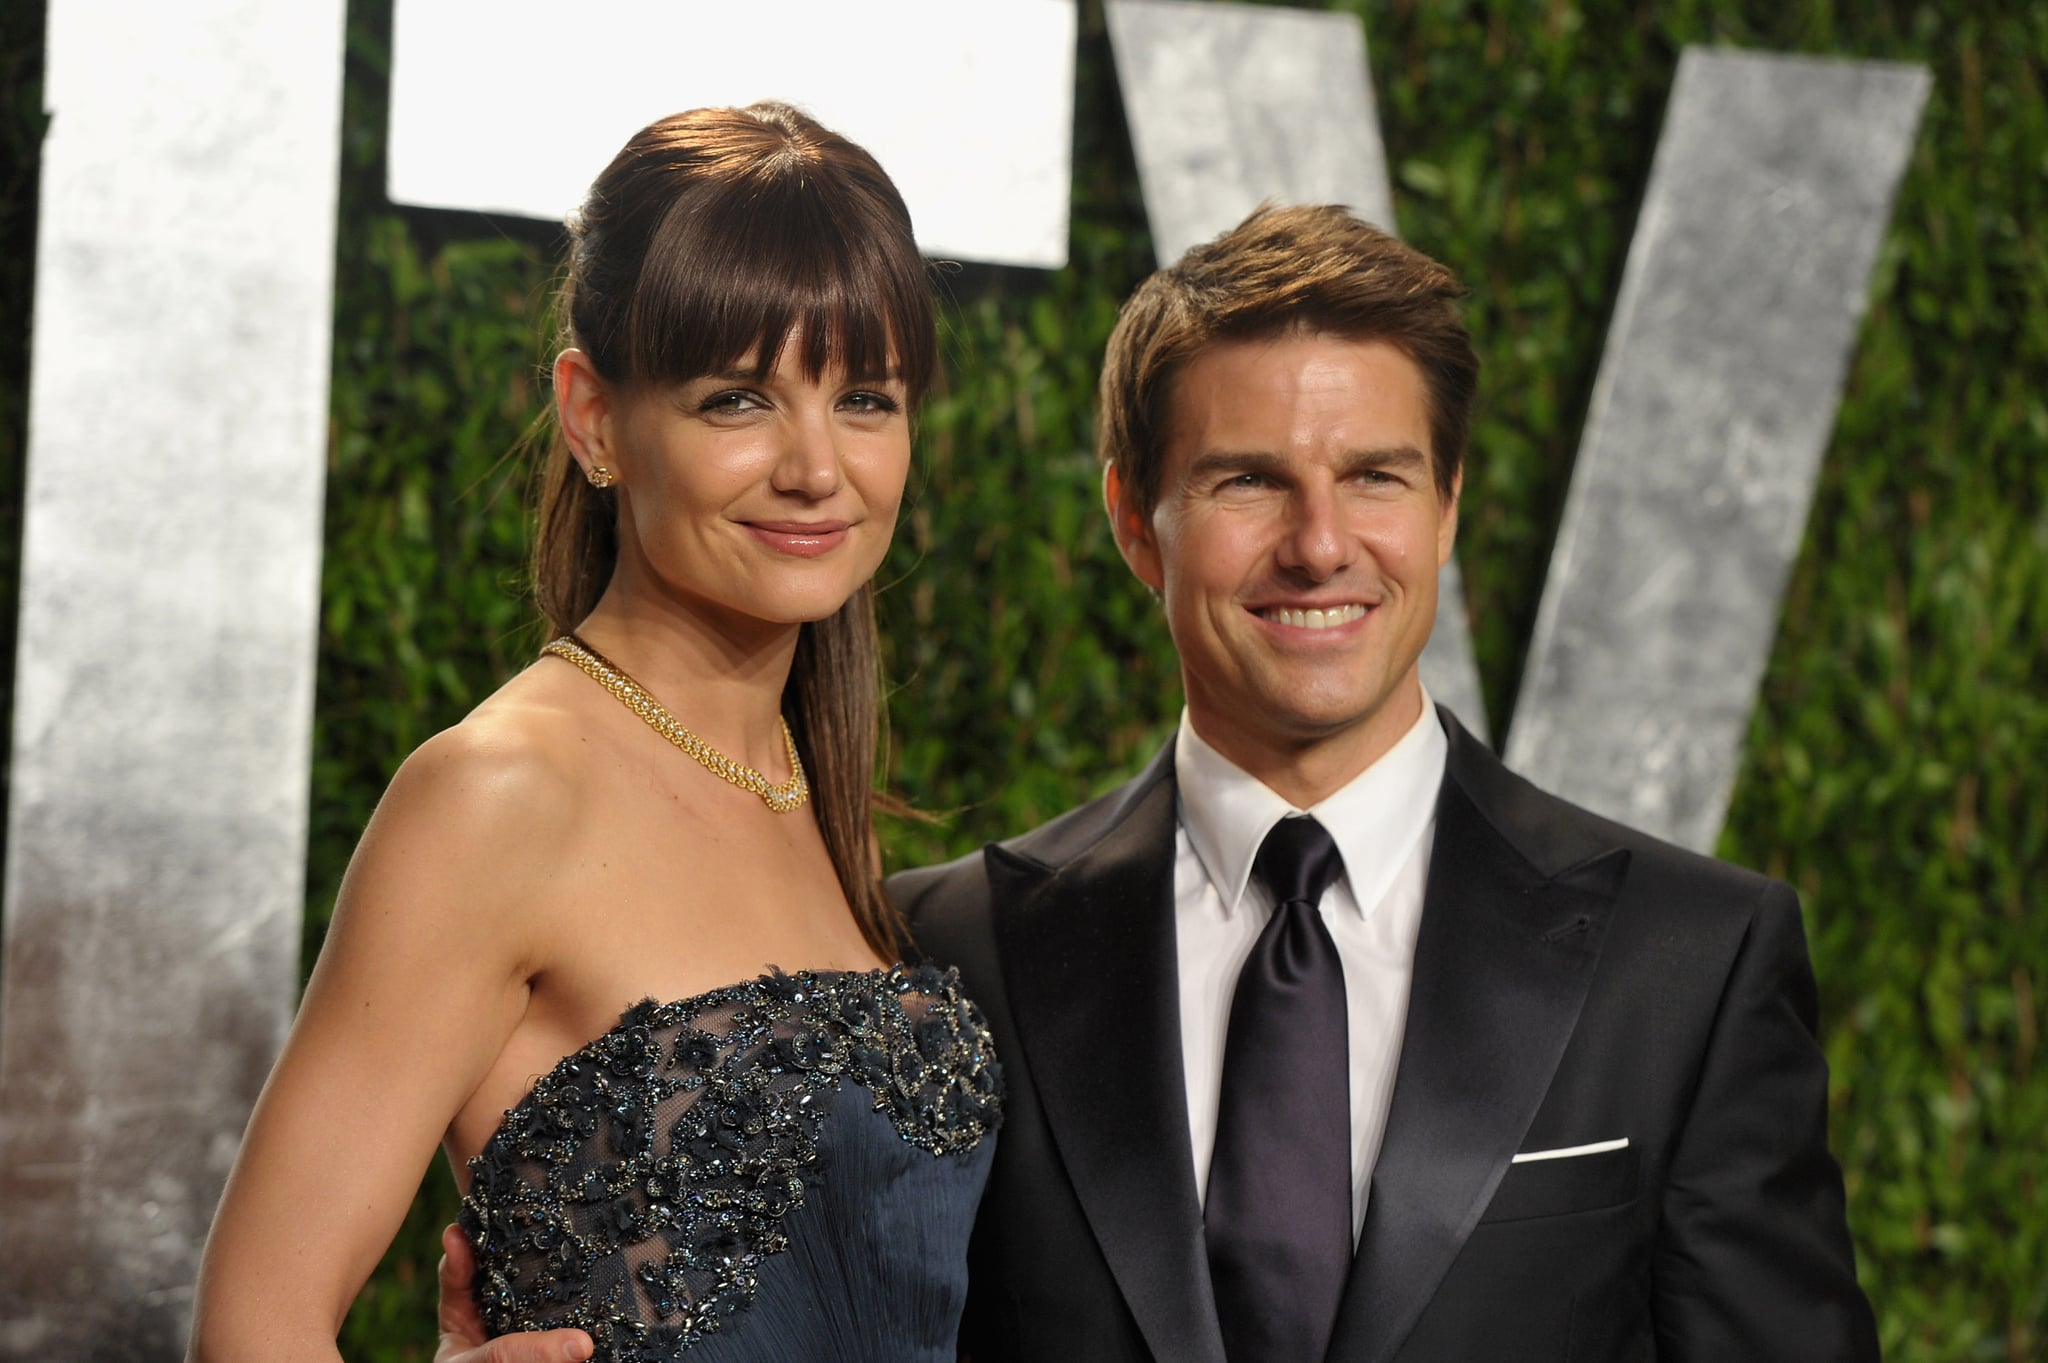 Tom Cruise and Katie Holmes up close at  the Vanity Fair Oscar party.